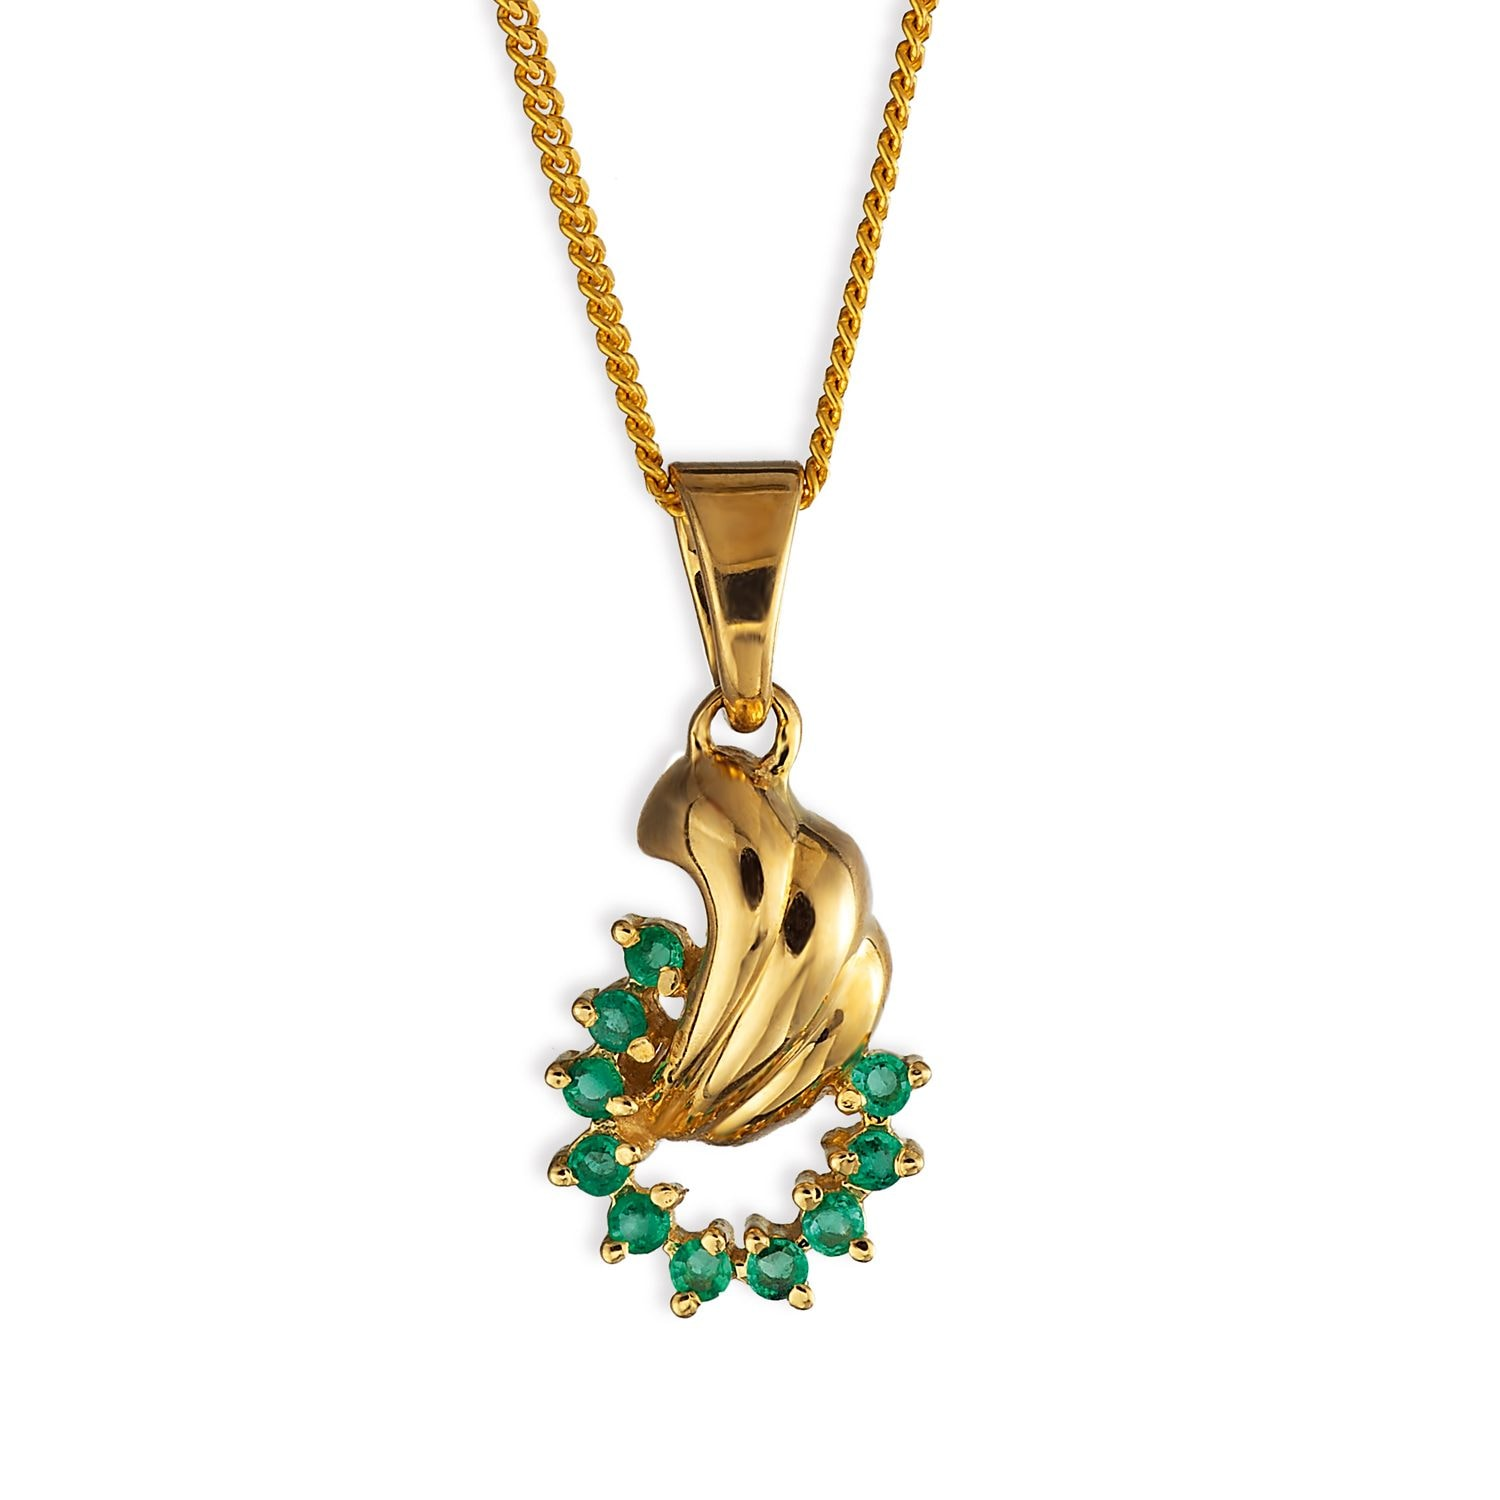 Tanishq 18KT Yellow Gold Emerald Pendant with Stylized